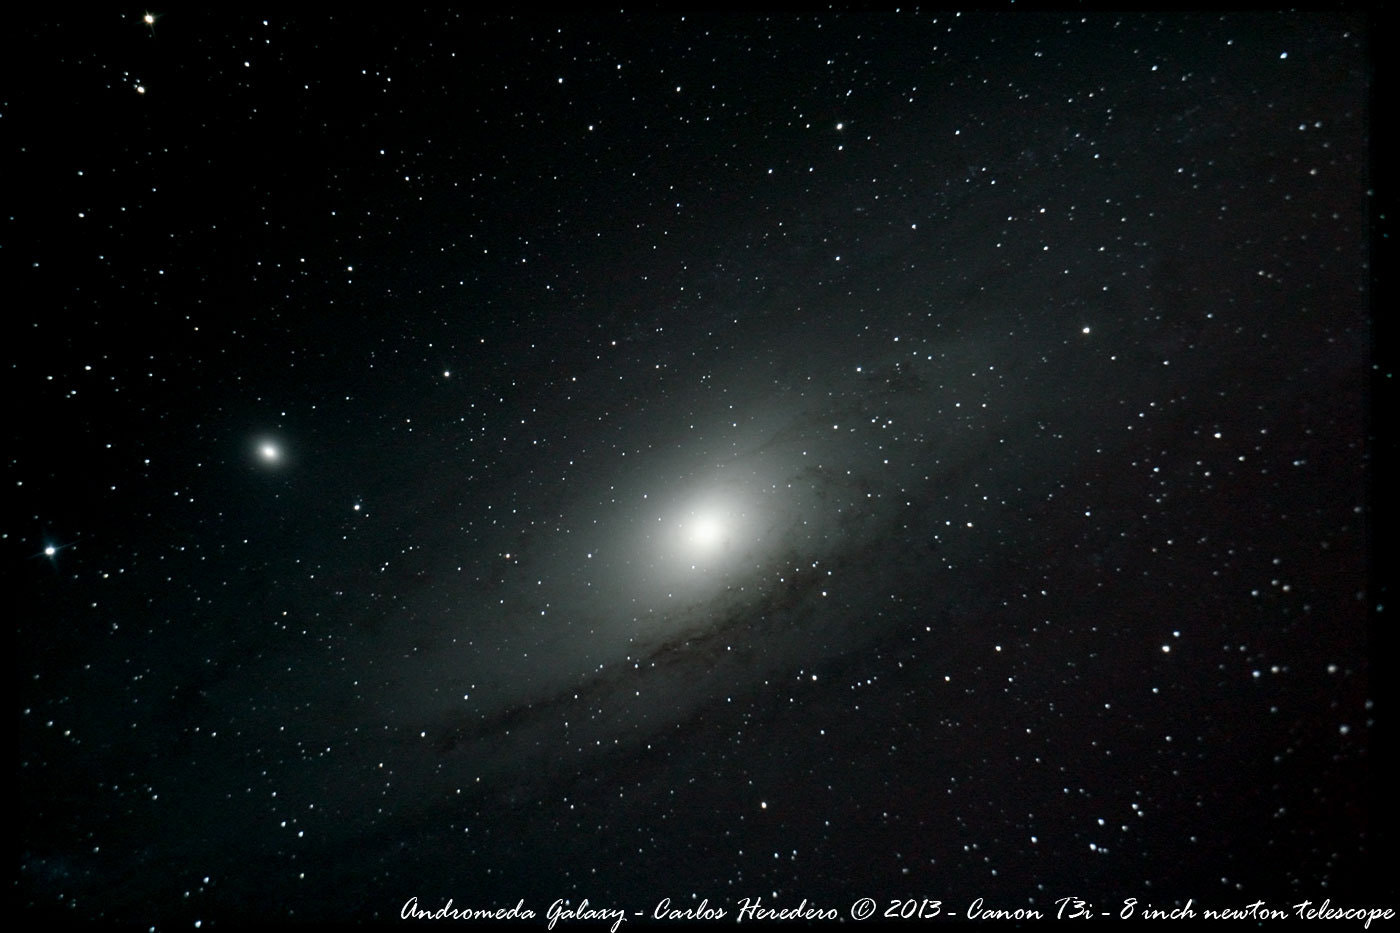 Photograph Andromeda Galaxy (one more) by Carlos Heredero on 500px